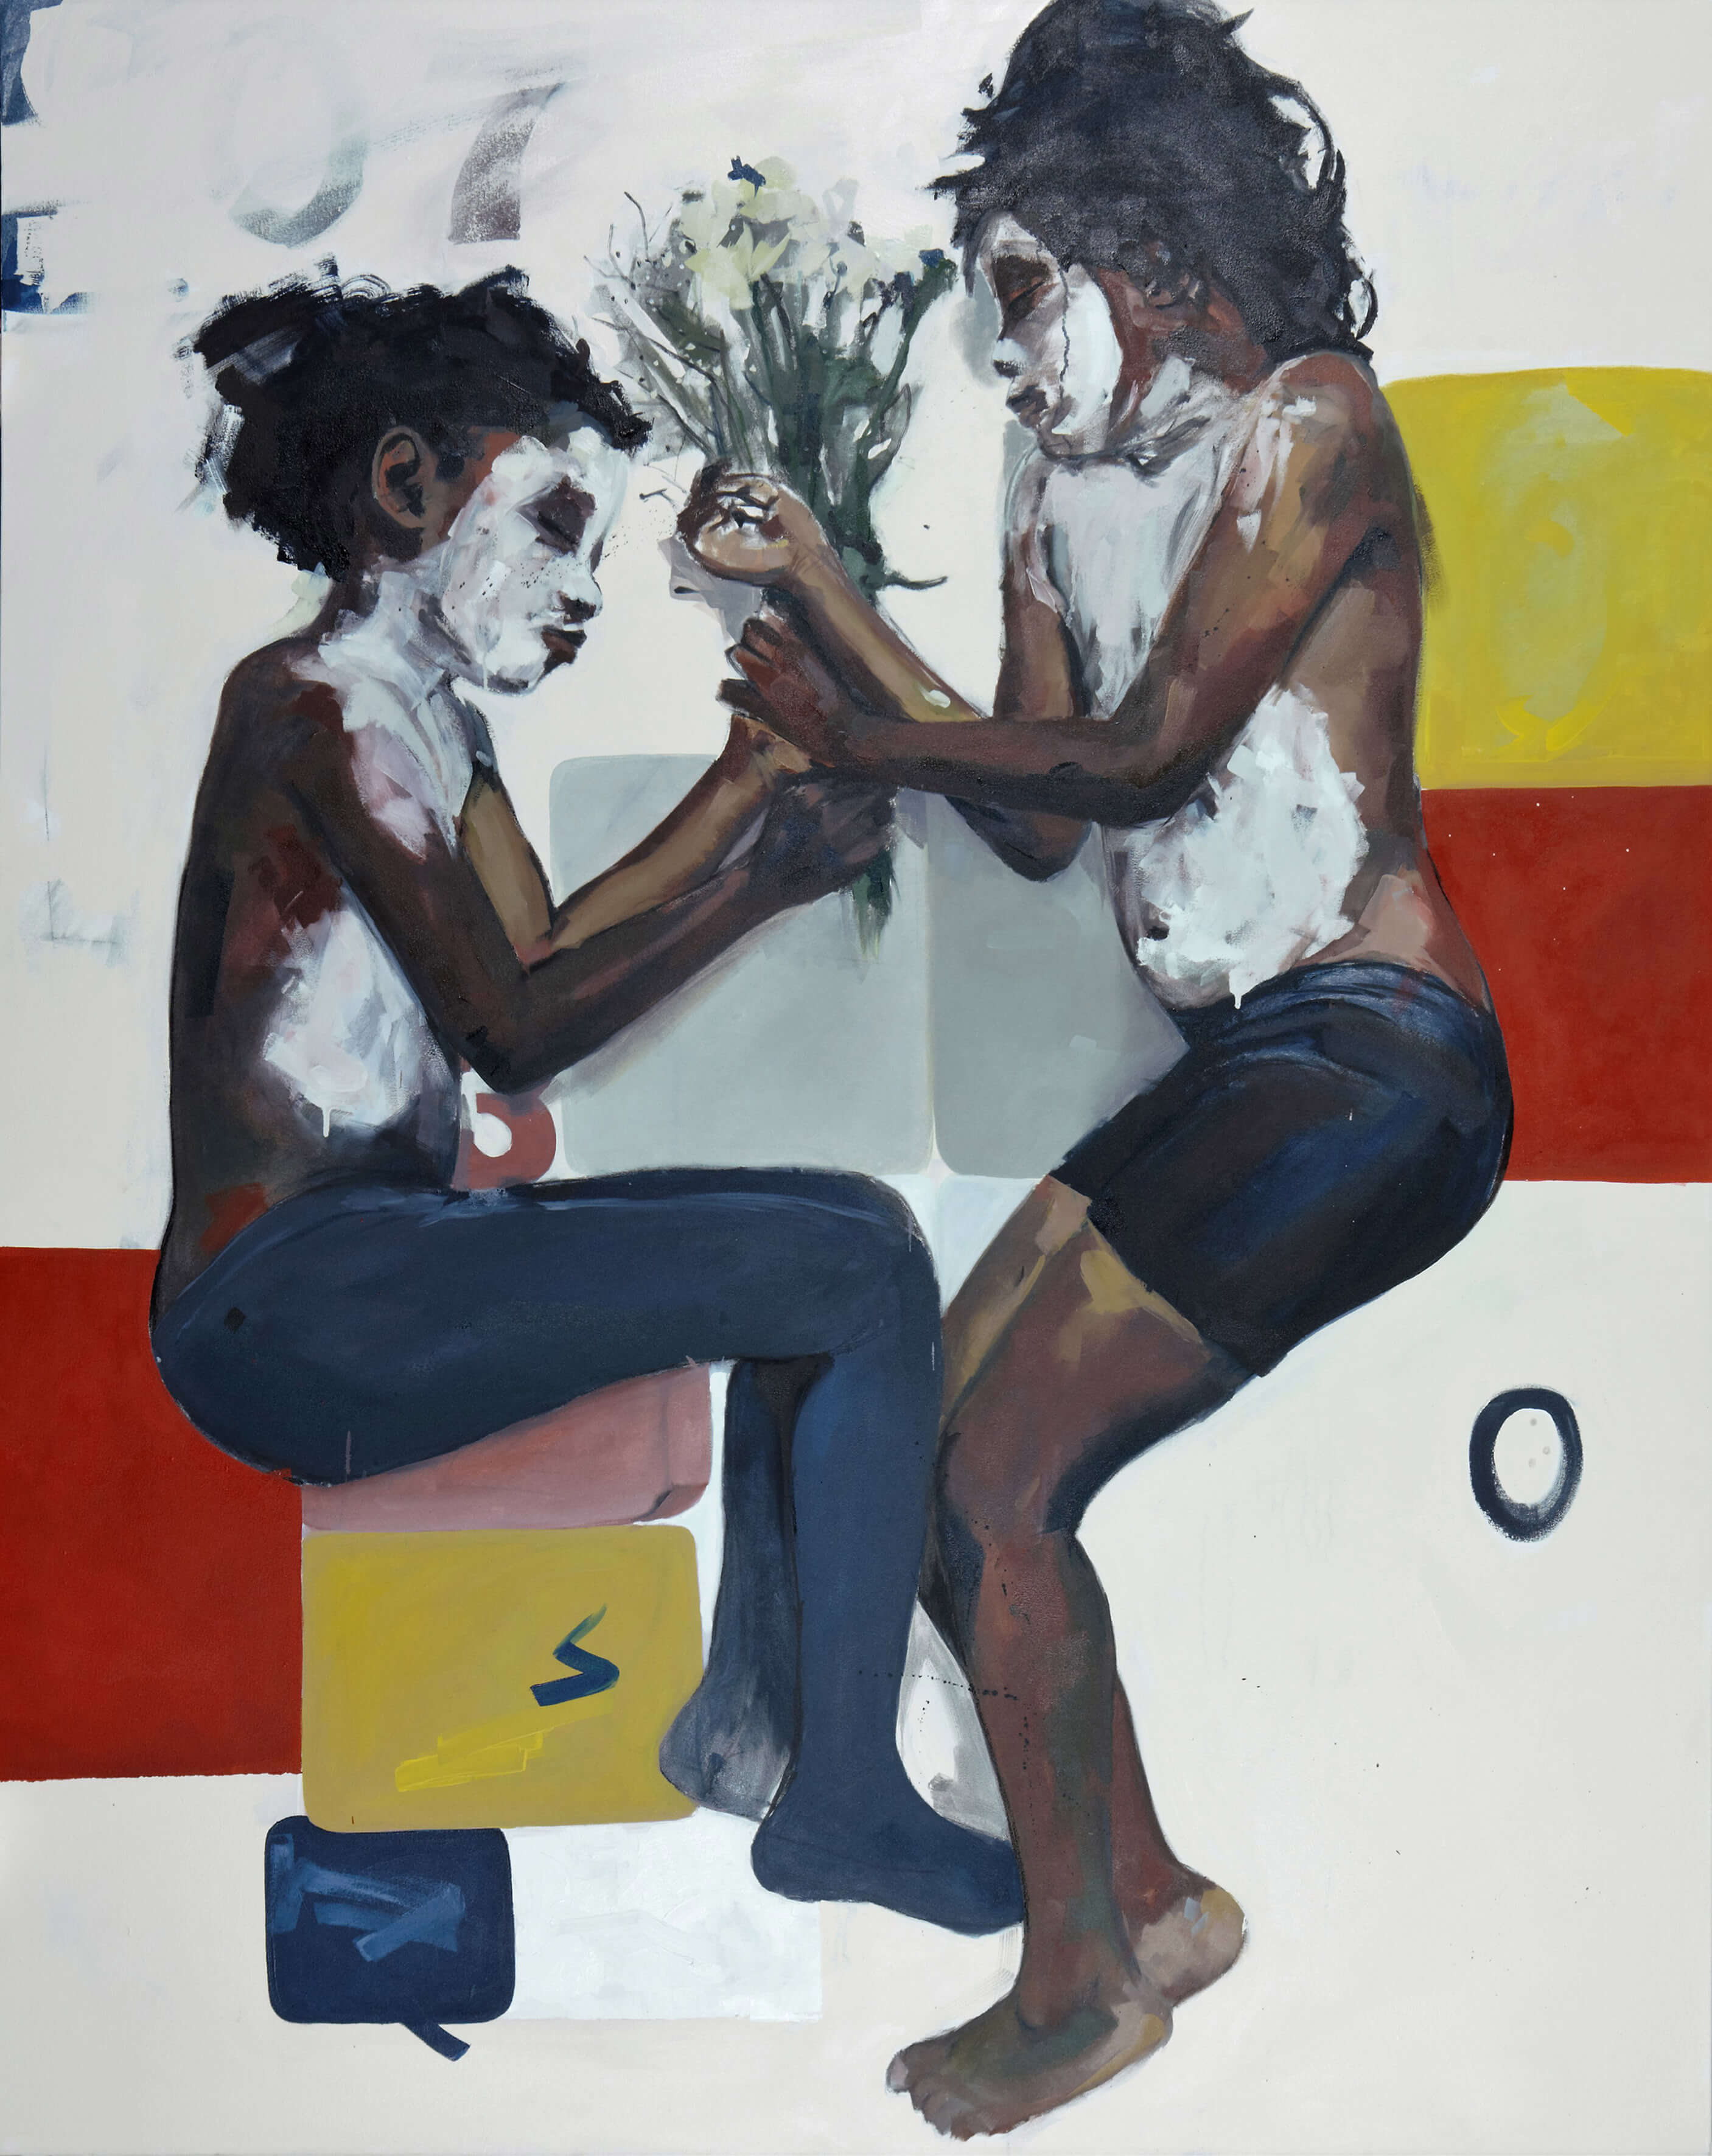 Kudzanai-Violet Hwami, Epilogue [Returning to the Garden], 2016, oil and acrylic on canvas, 214 x 170 cm, Courtesy of Tyburn Gallery